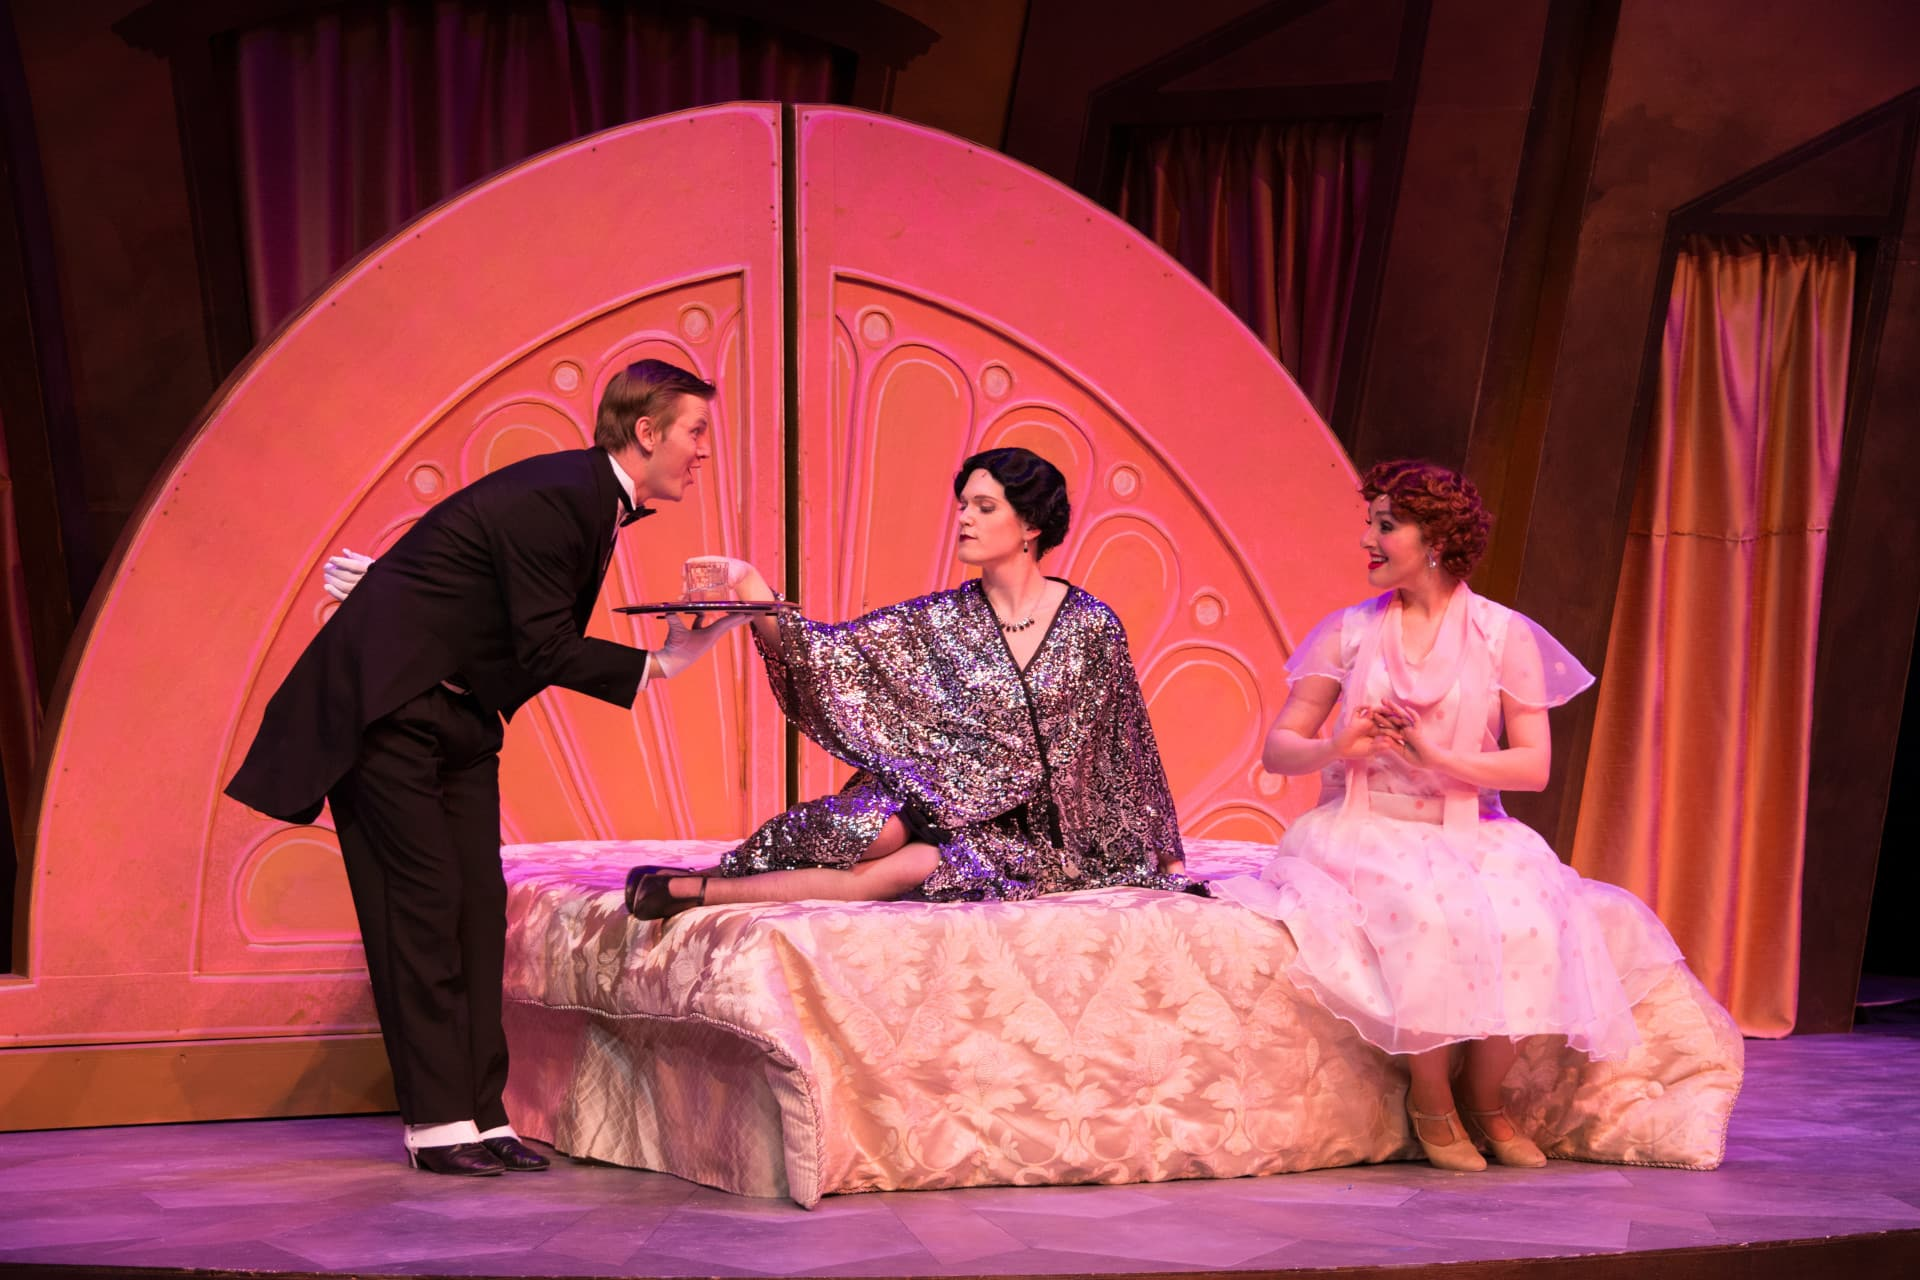 On set of the Drowsy Chaperone.